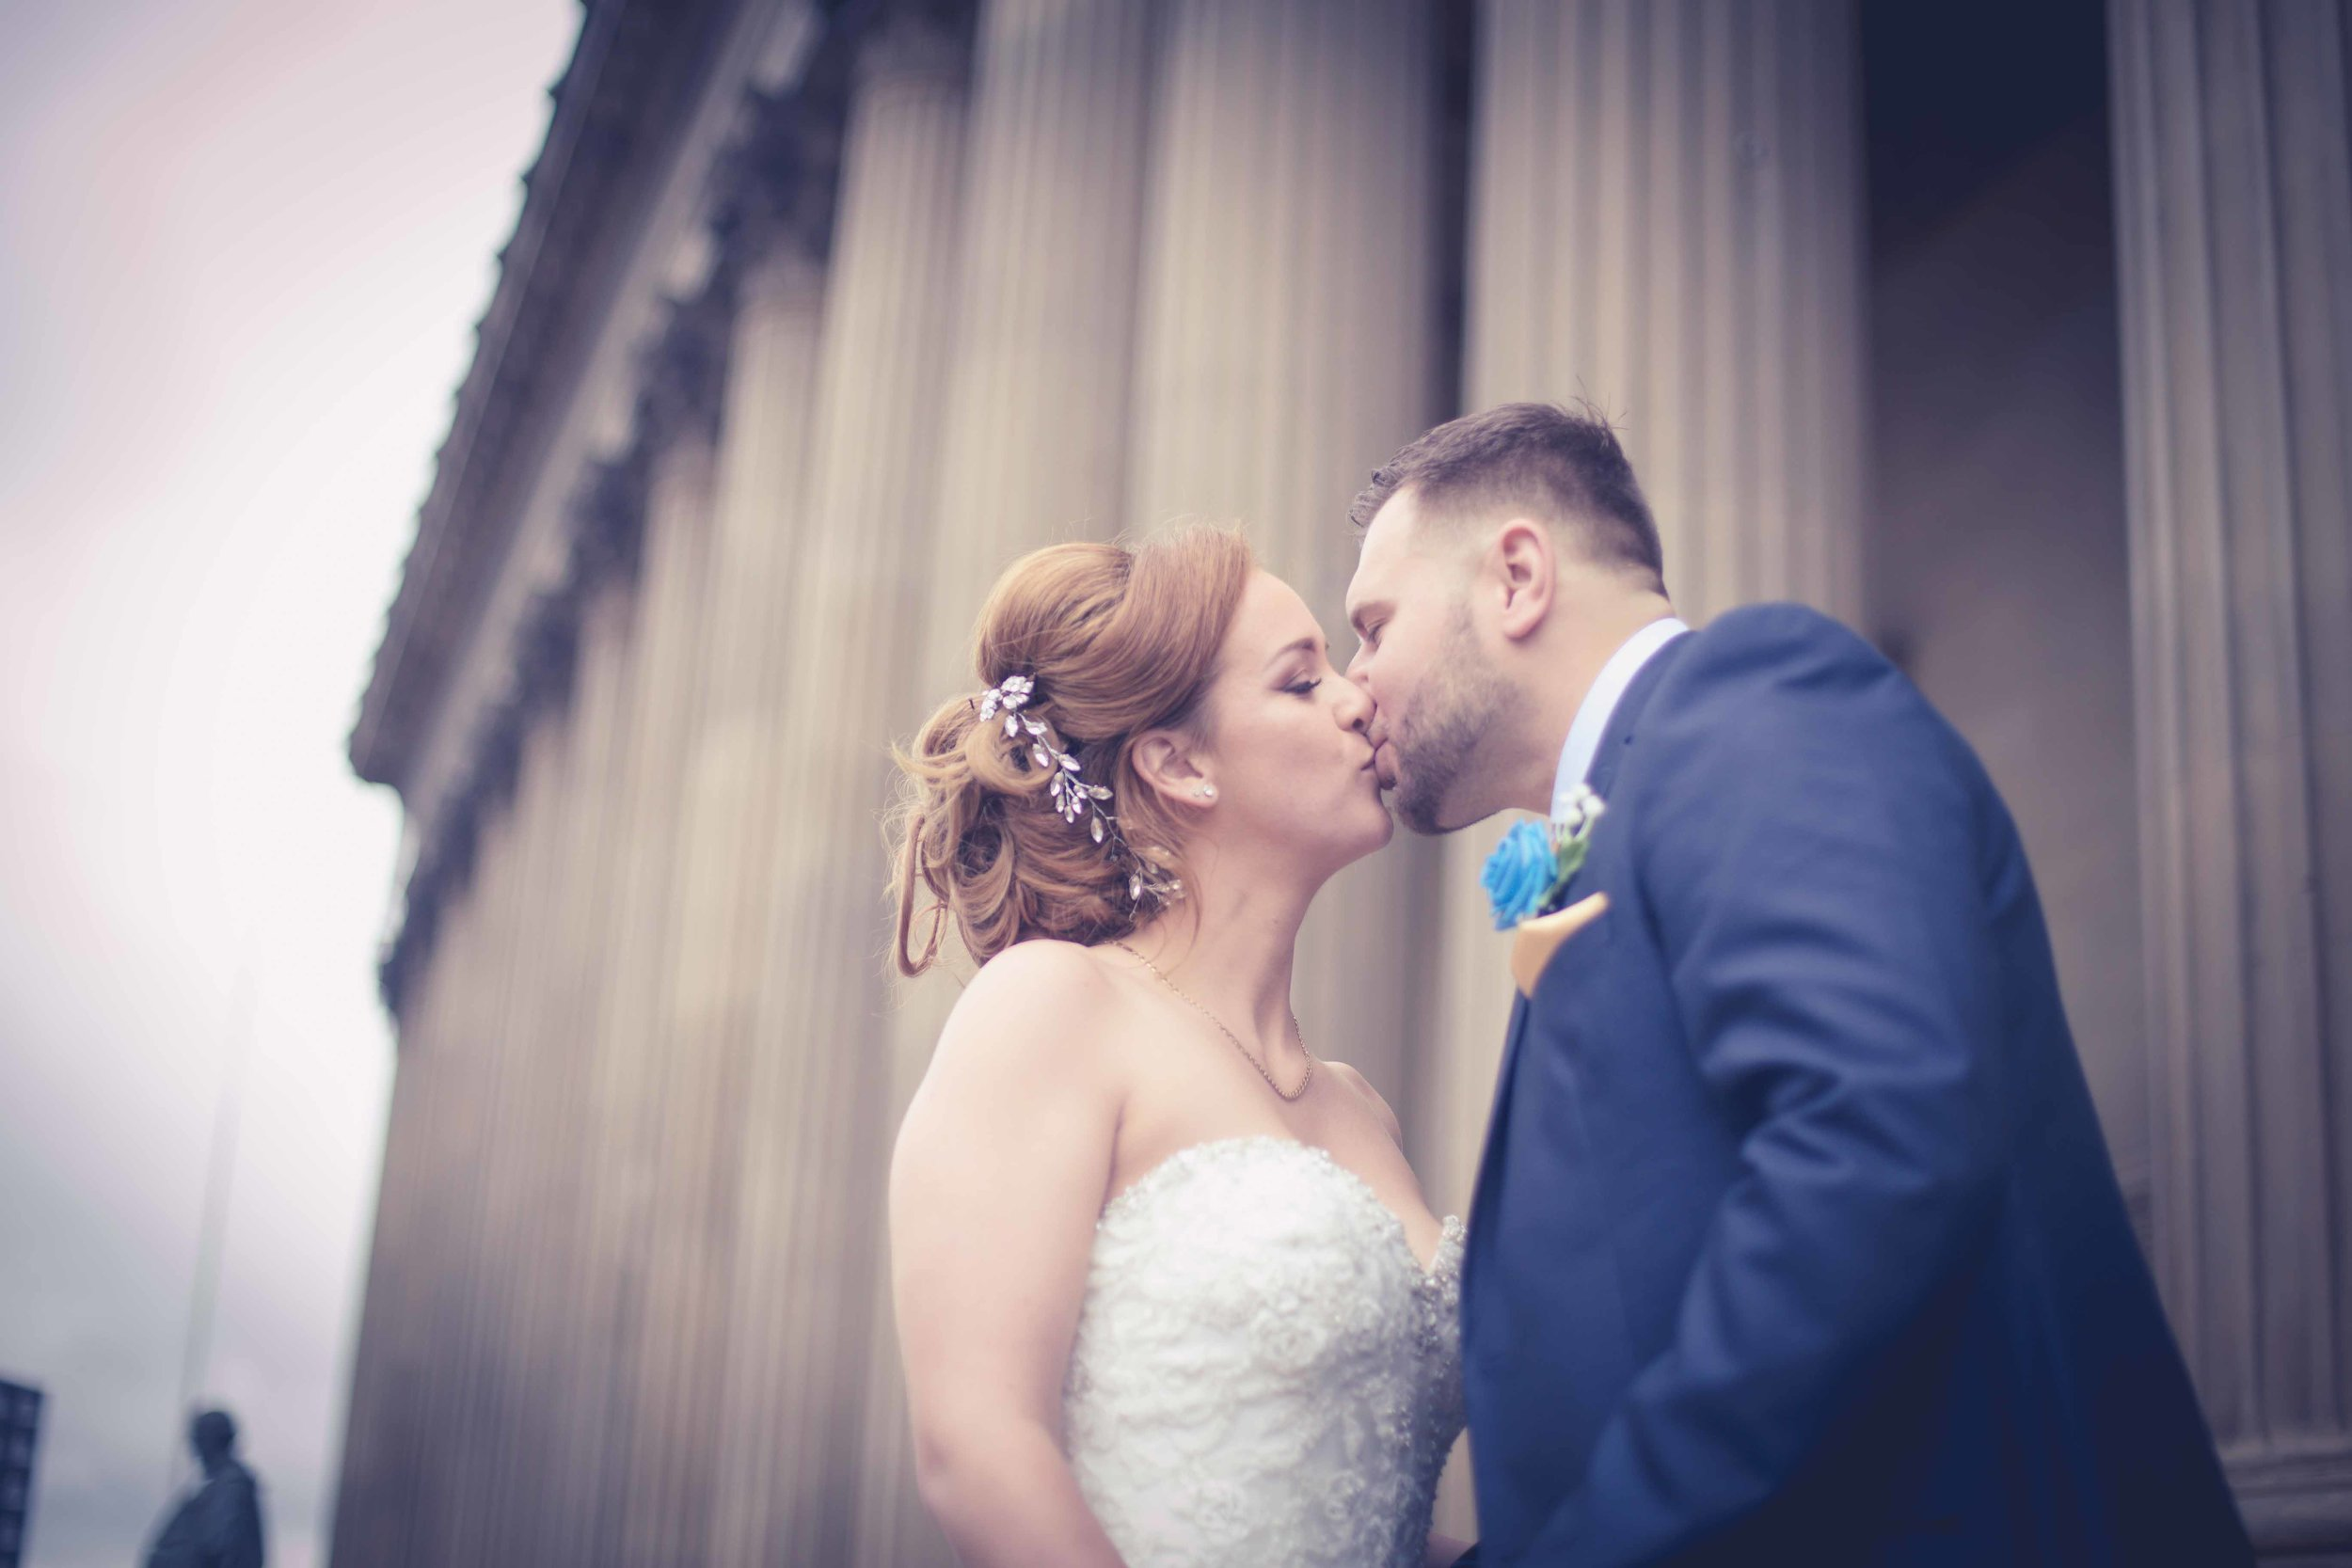 wedding-photos-at-st-georges-hall-liverpool (76 of 122).jpg